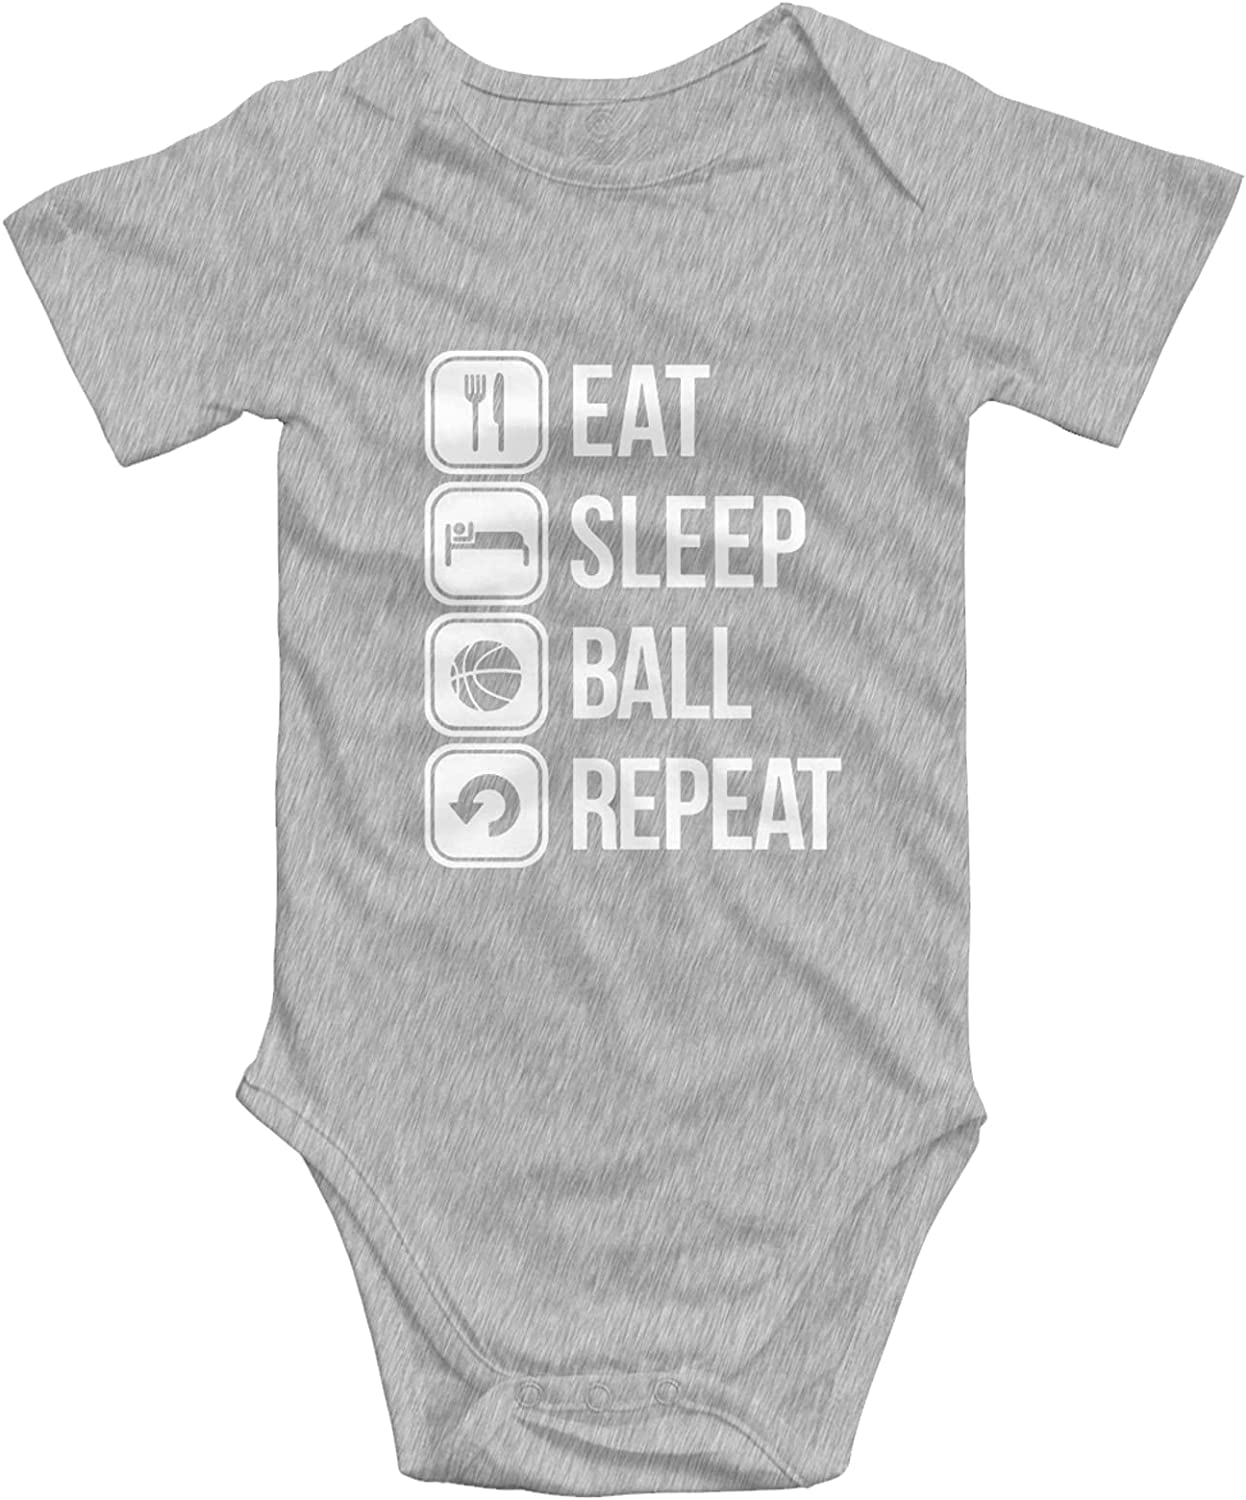 Eat Sleep Limited Special Price Basketball Repeat service Baby Girls Boys Cute Onesies Infant